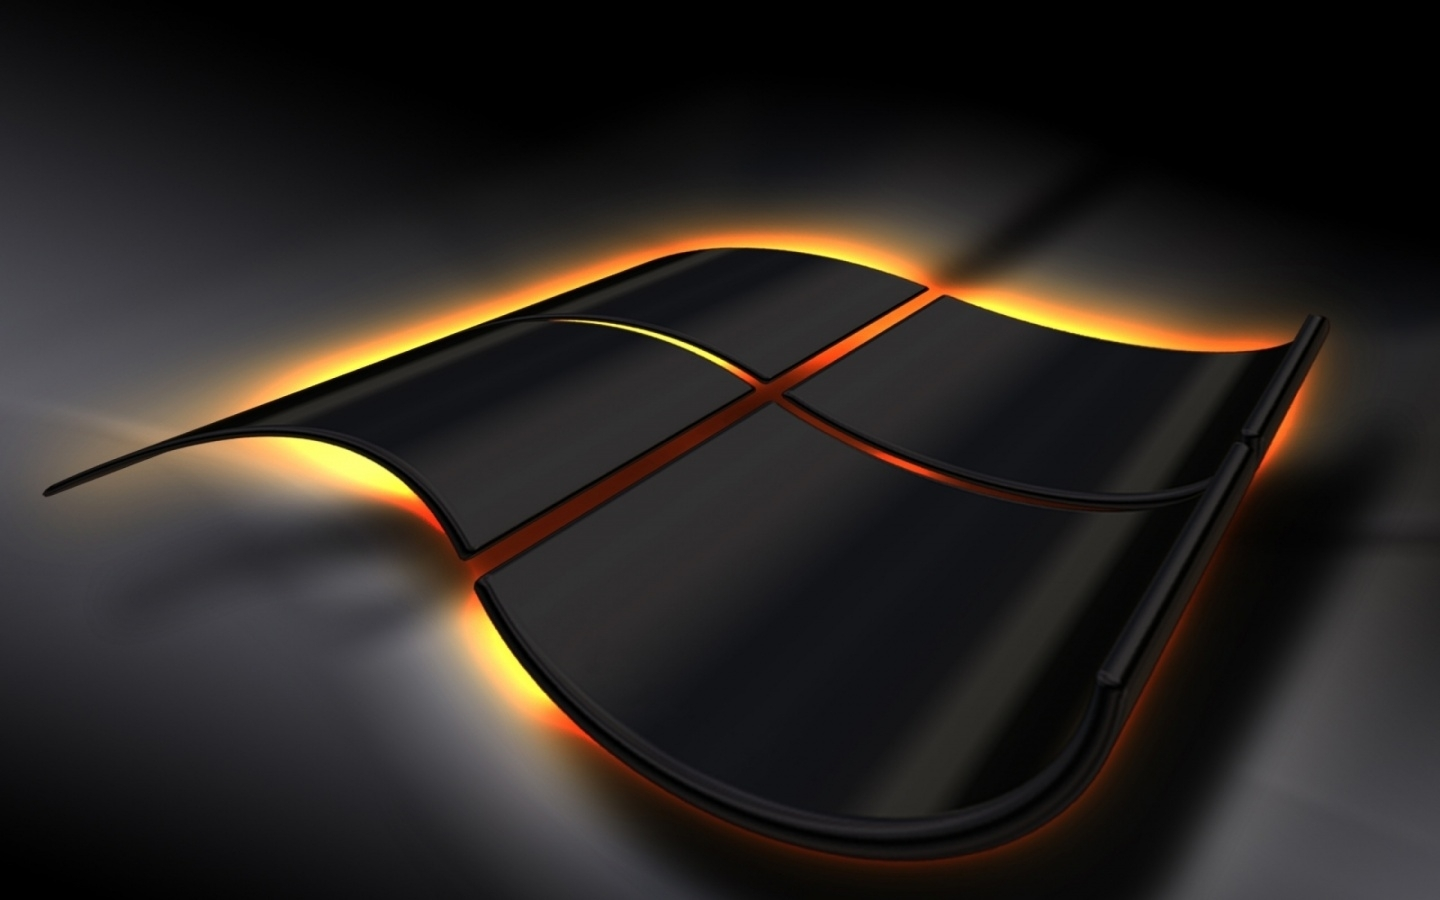 windows-8-hd-wallpapers-free-download-gallery-(92-plus)-pic